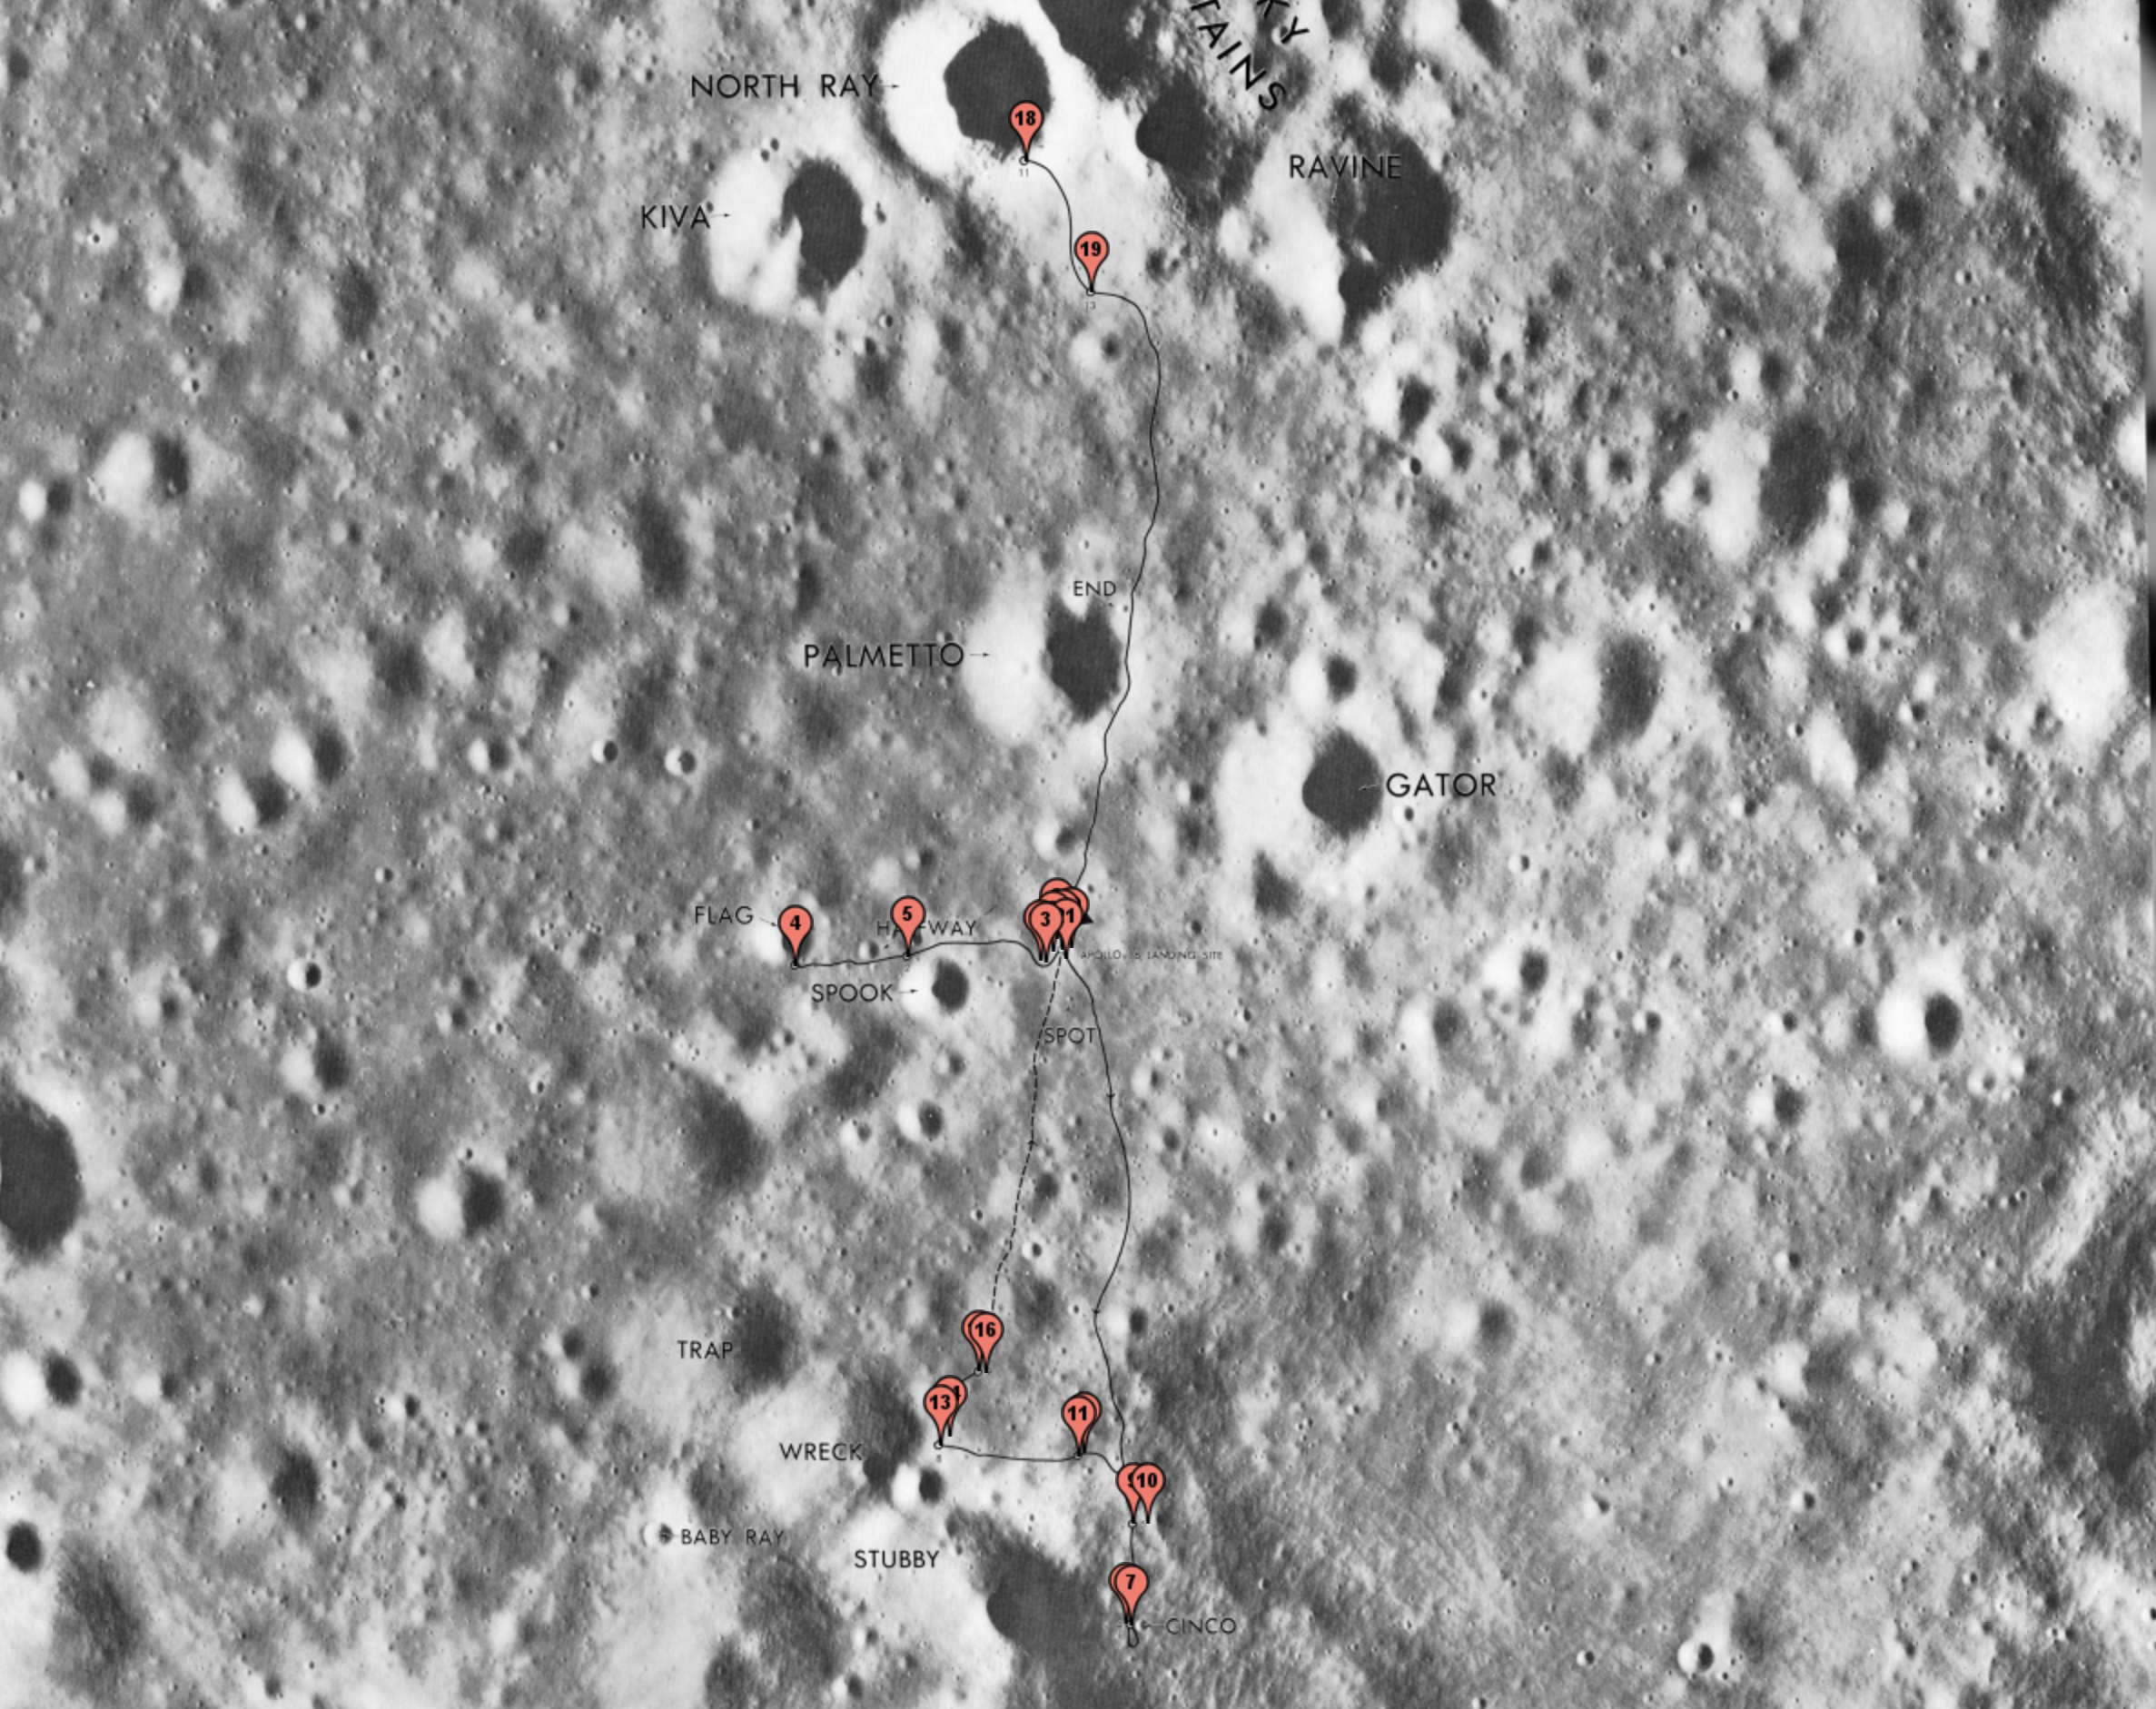 _images/apollo16-map.png